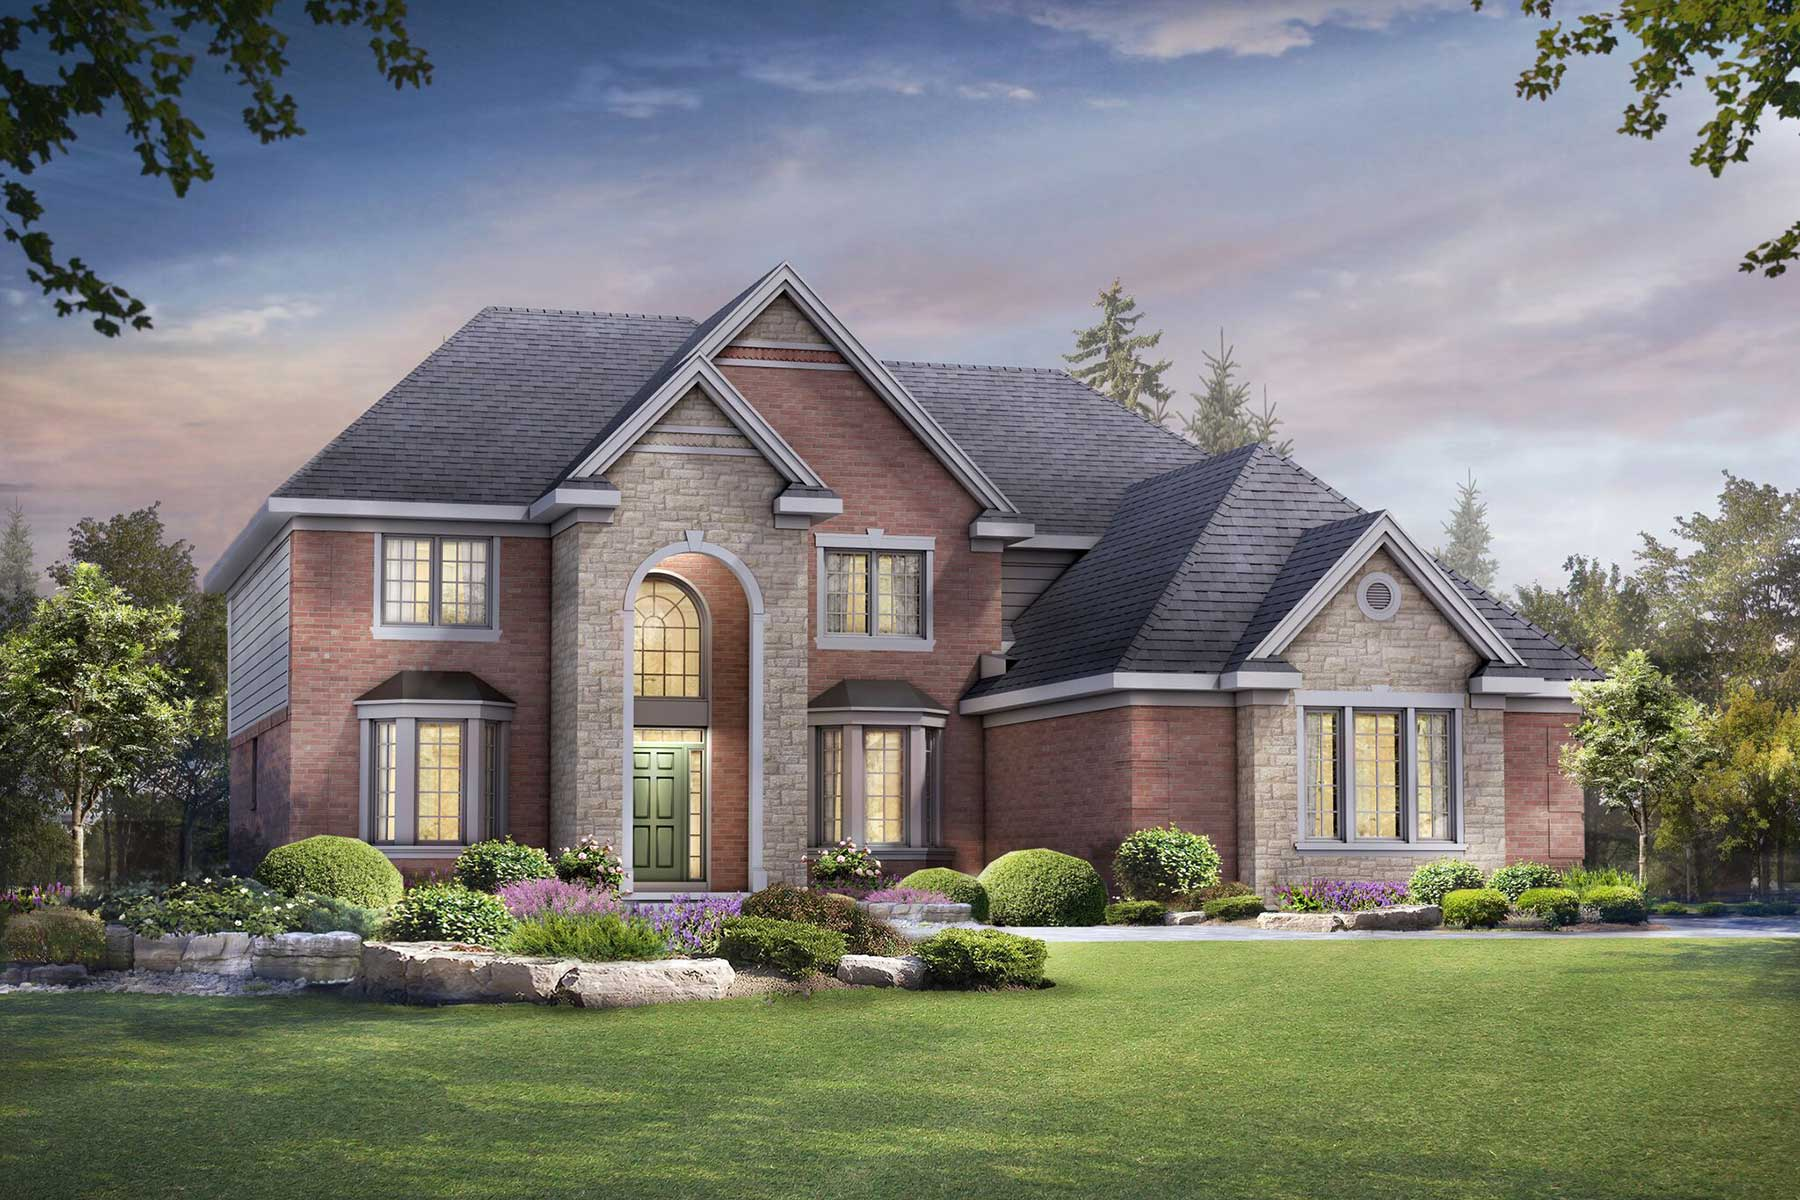 Homes For Sale In Novi Valencia Estates South Homes For Sale In Novi Mi M I